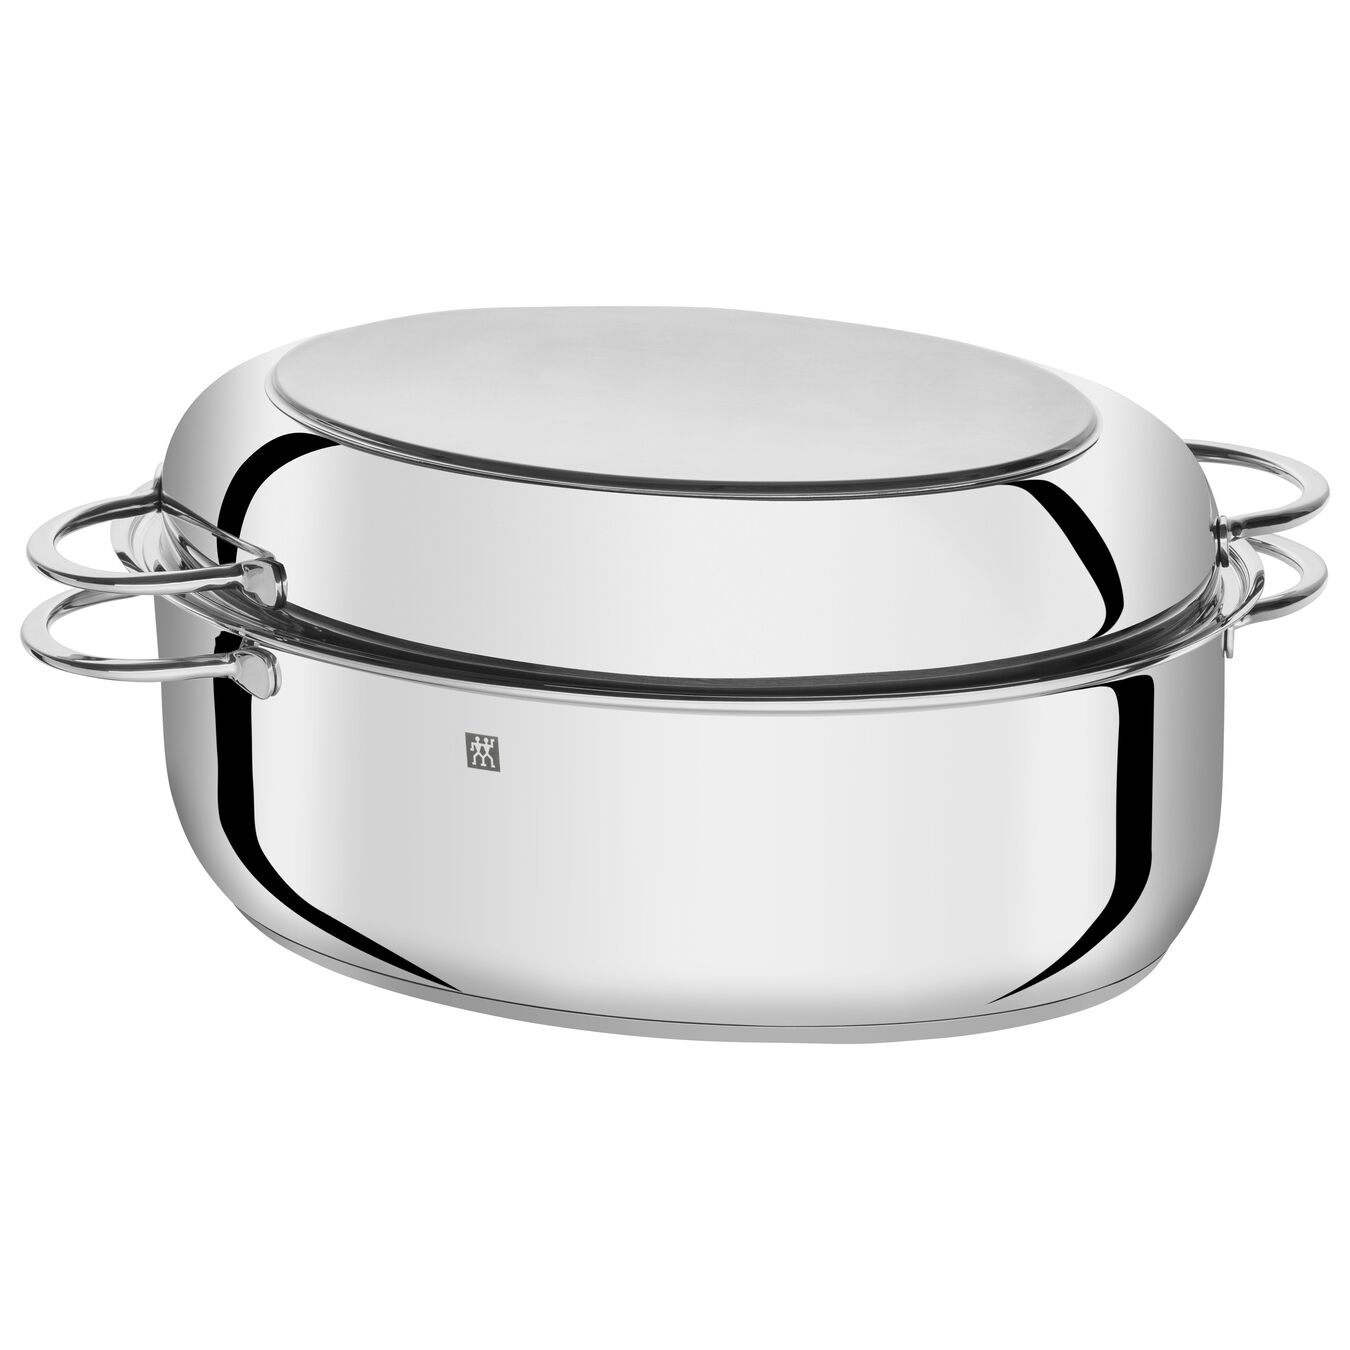 18/10 Stainless Steel Multi-Roaster 38cm x 25cm,,large 1